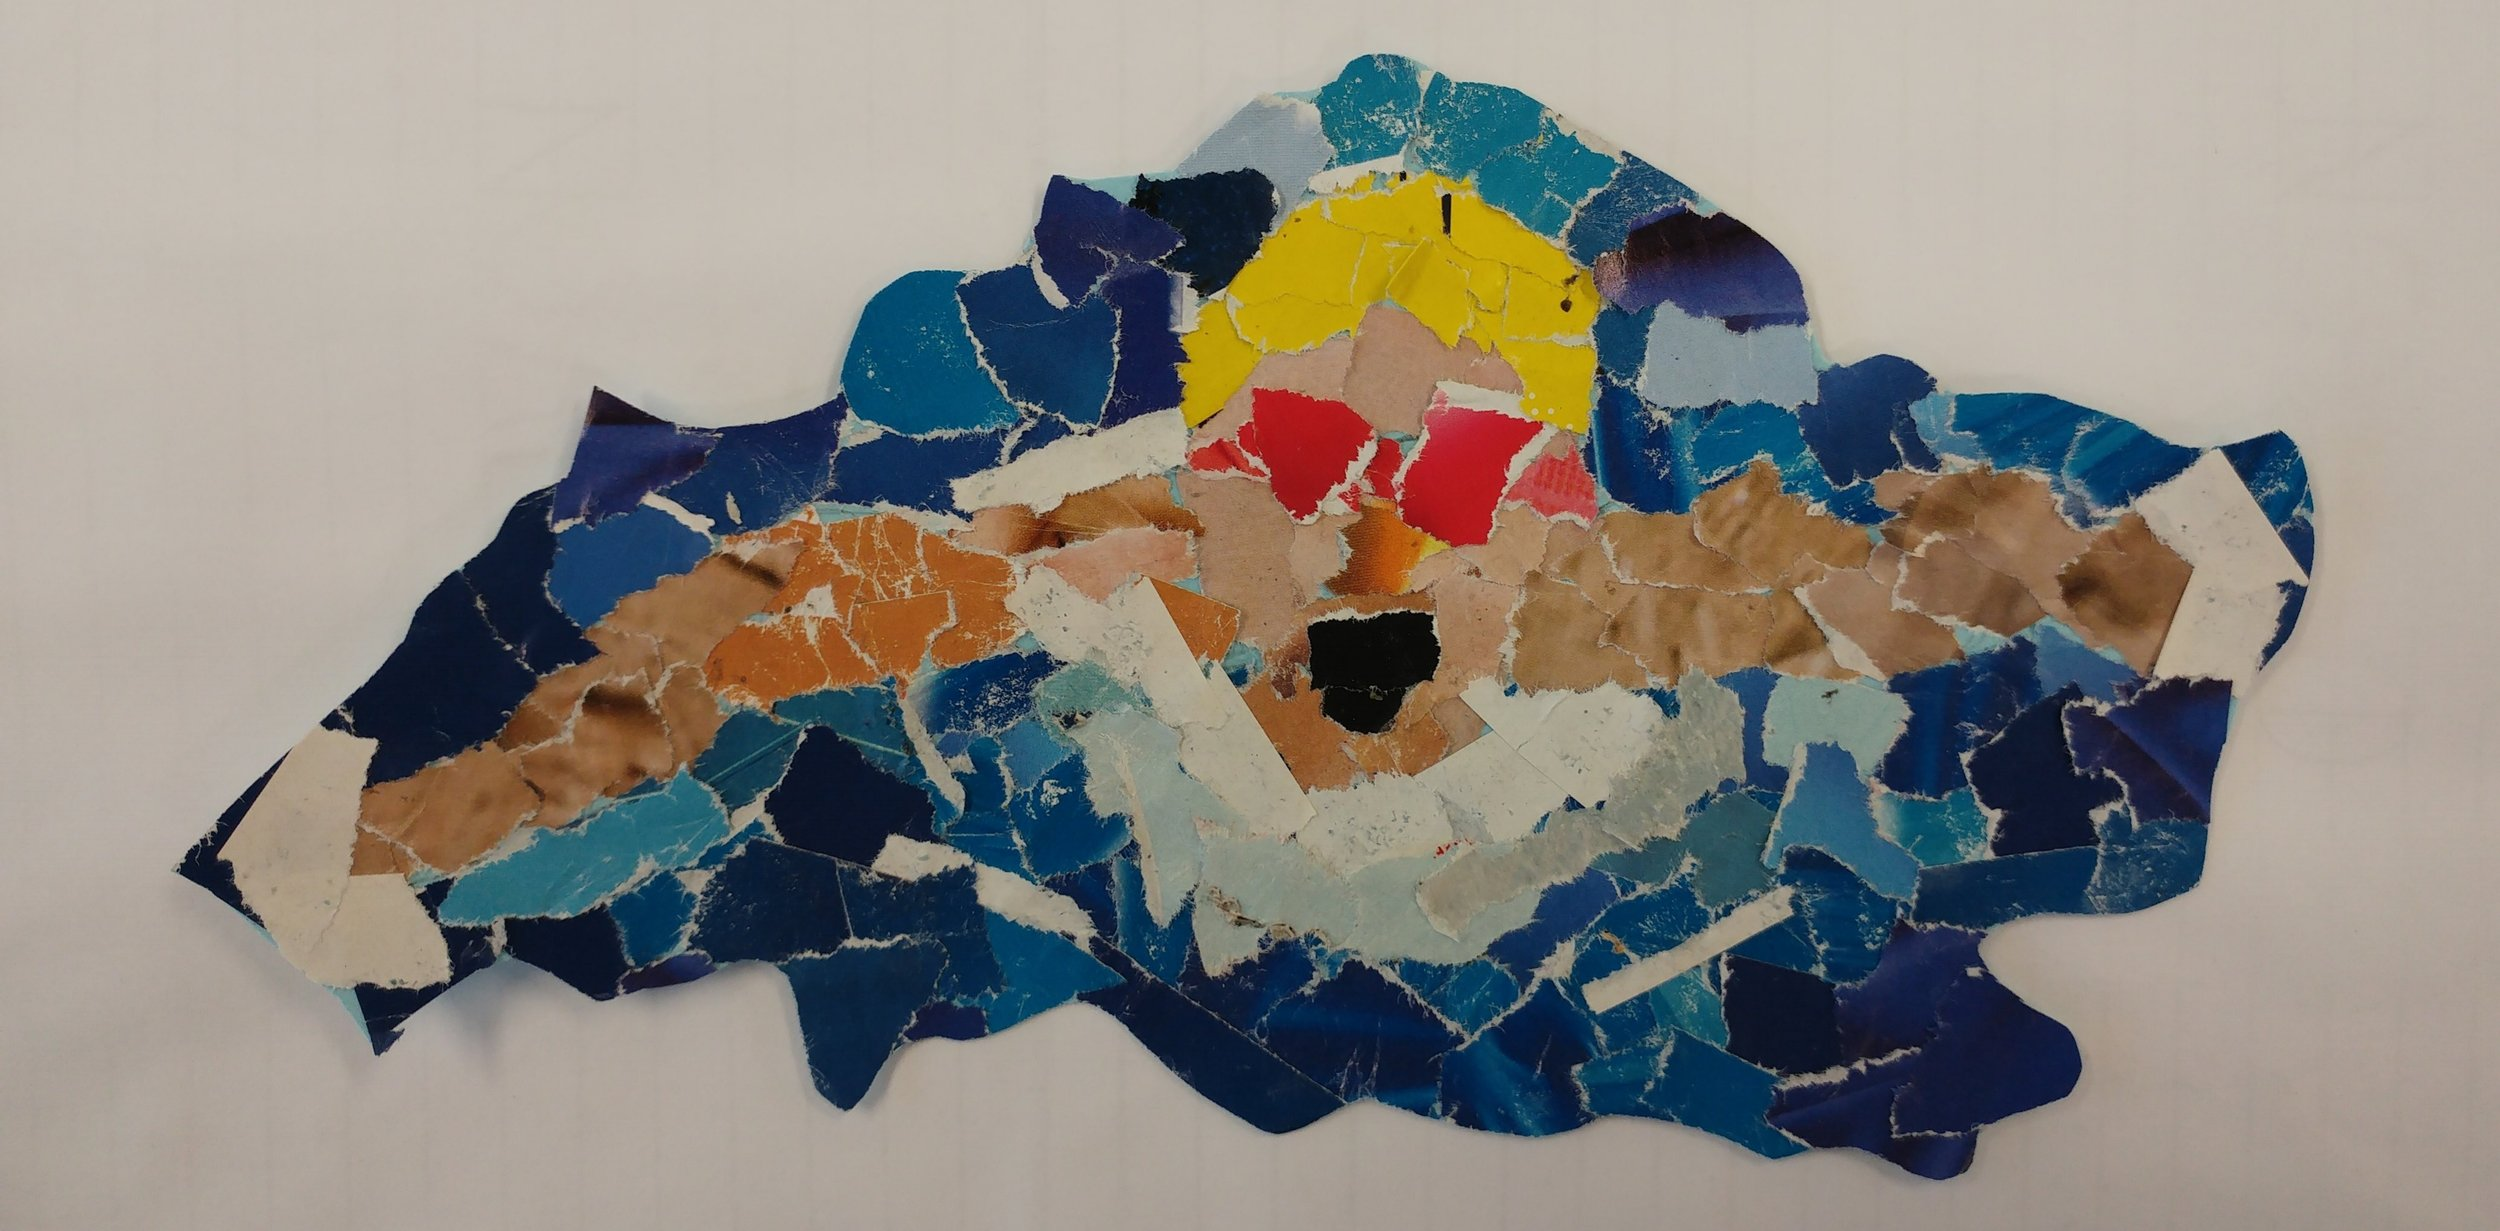 Swimmer. Mosaic by Noah, Hillside Primary School